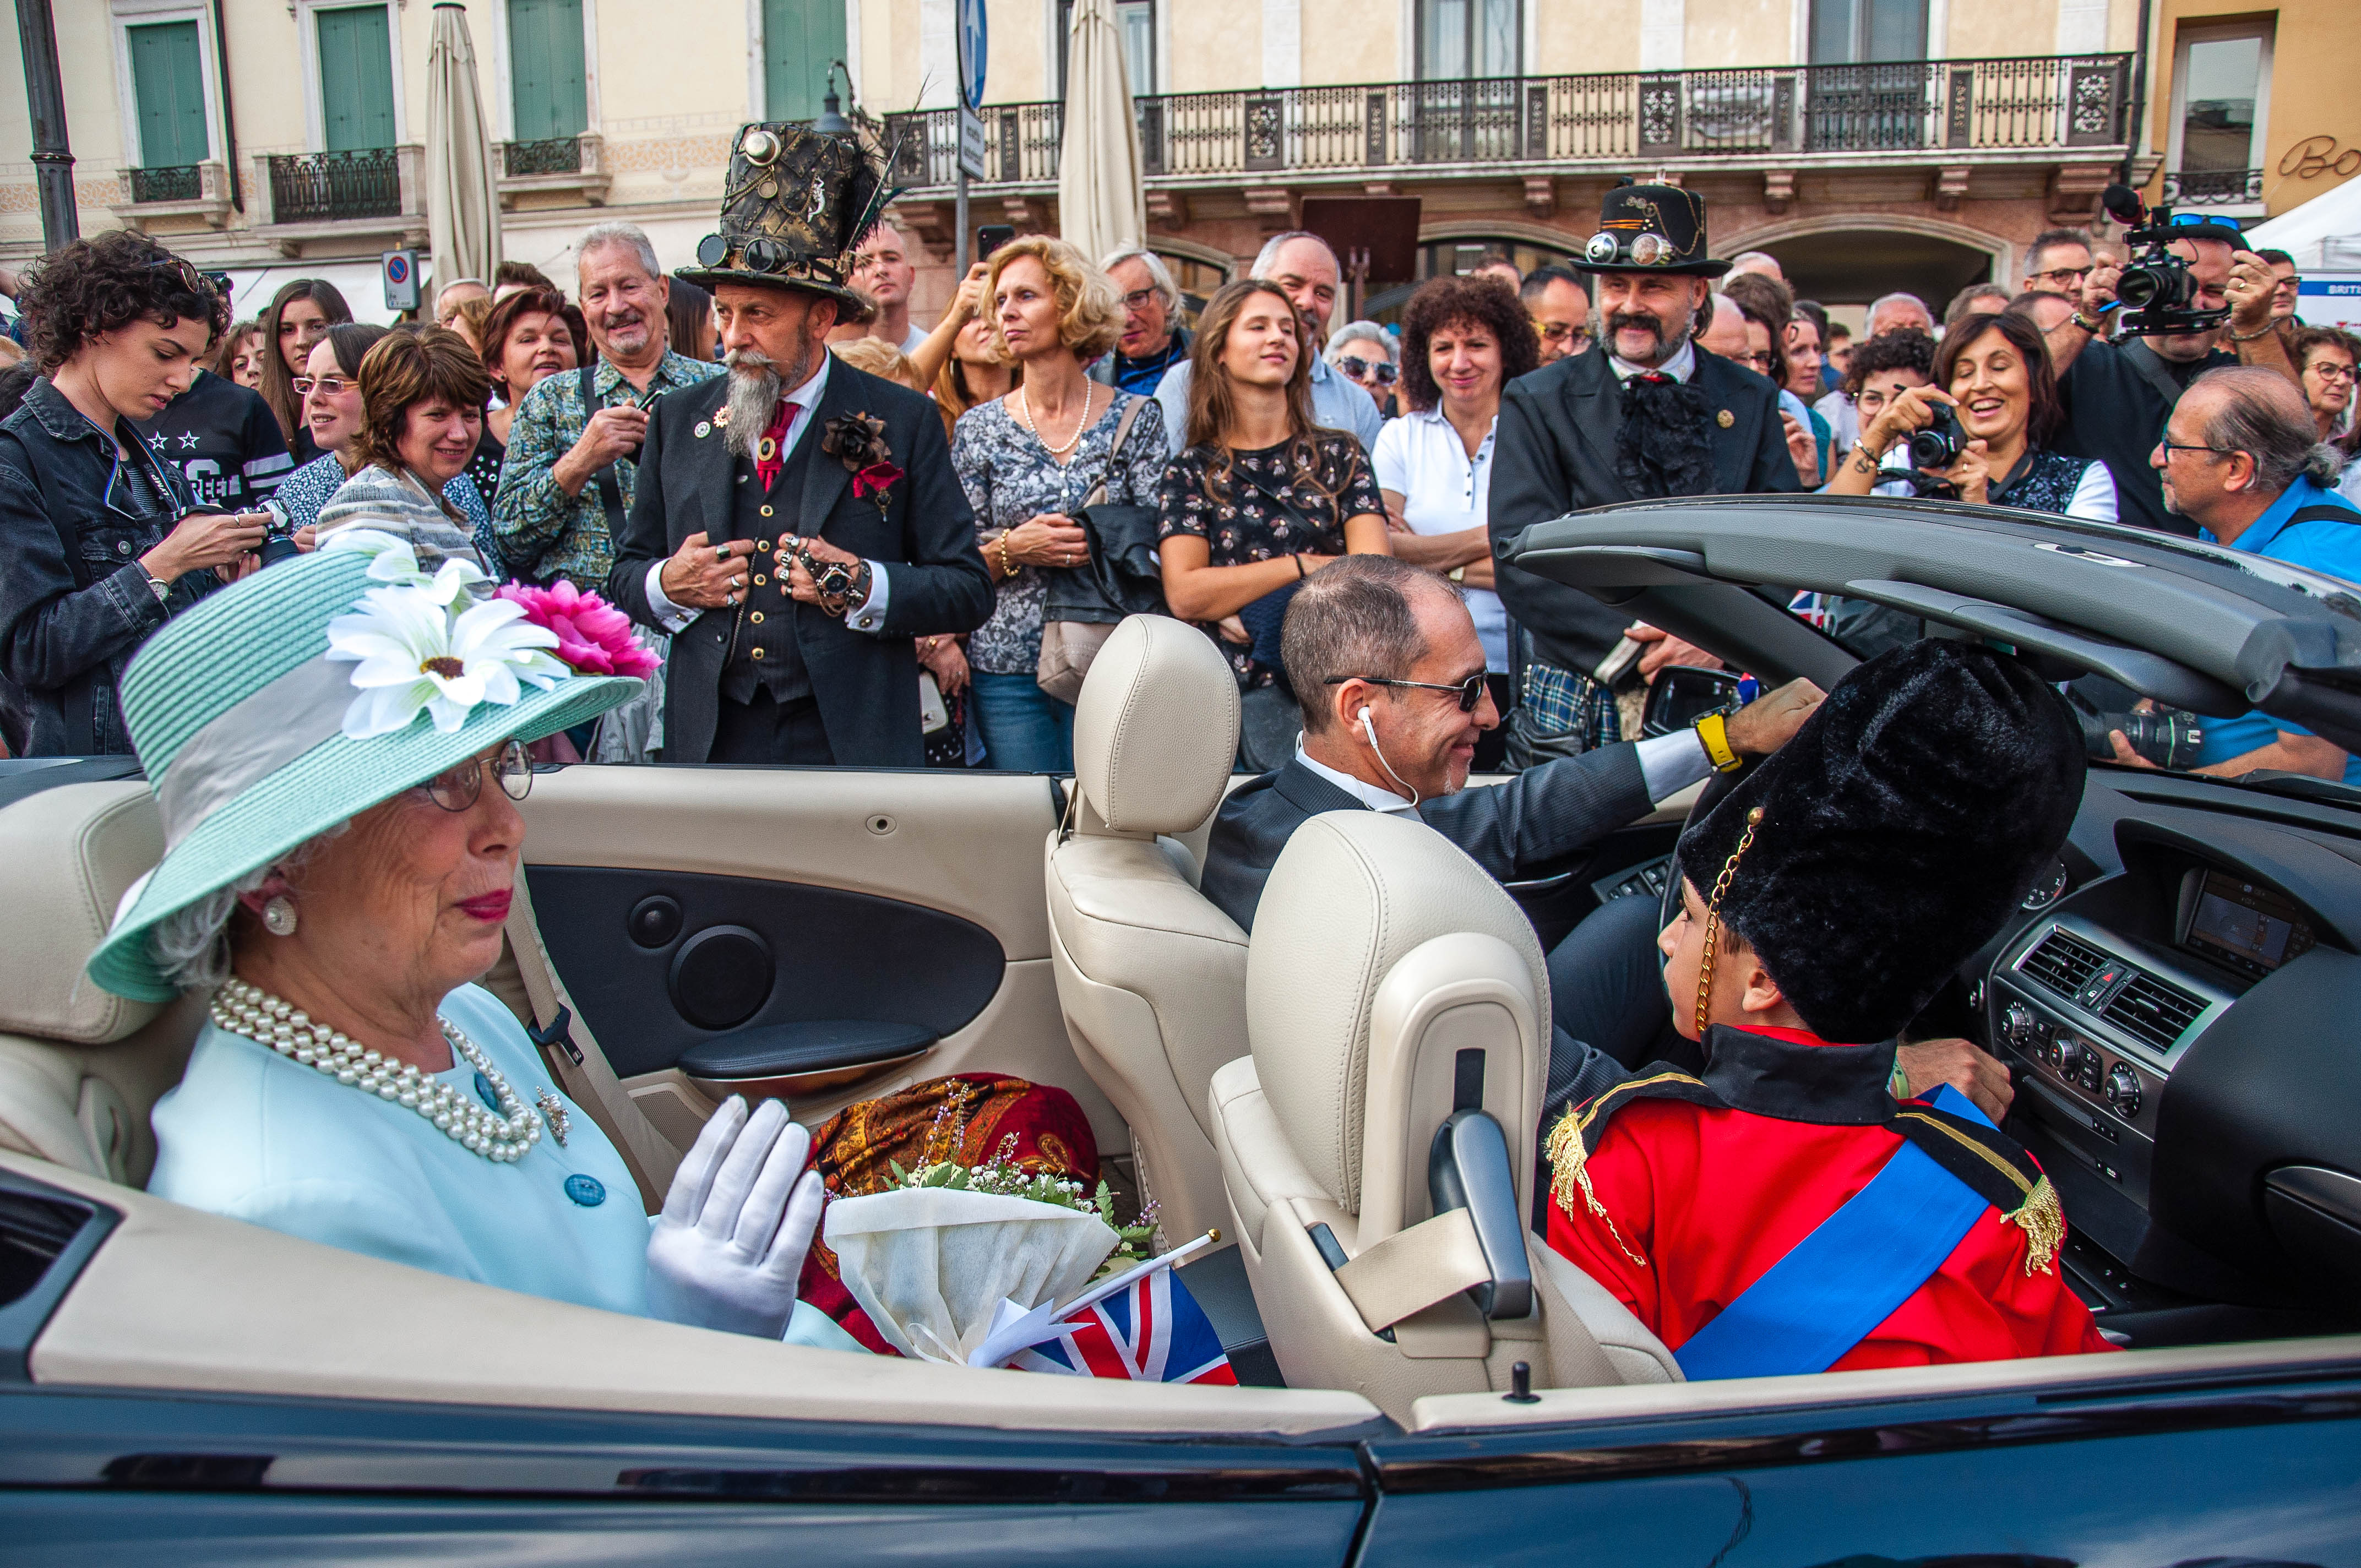 Queen Elizabeth - Parade at British Day Schio - Schio, Veneto, Italy - rossiwrites.com